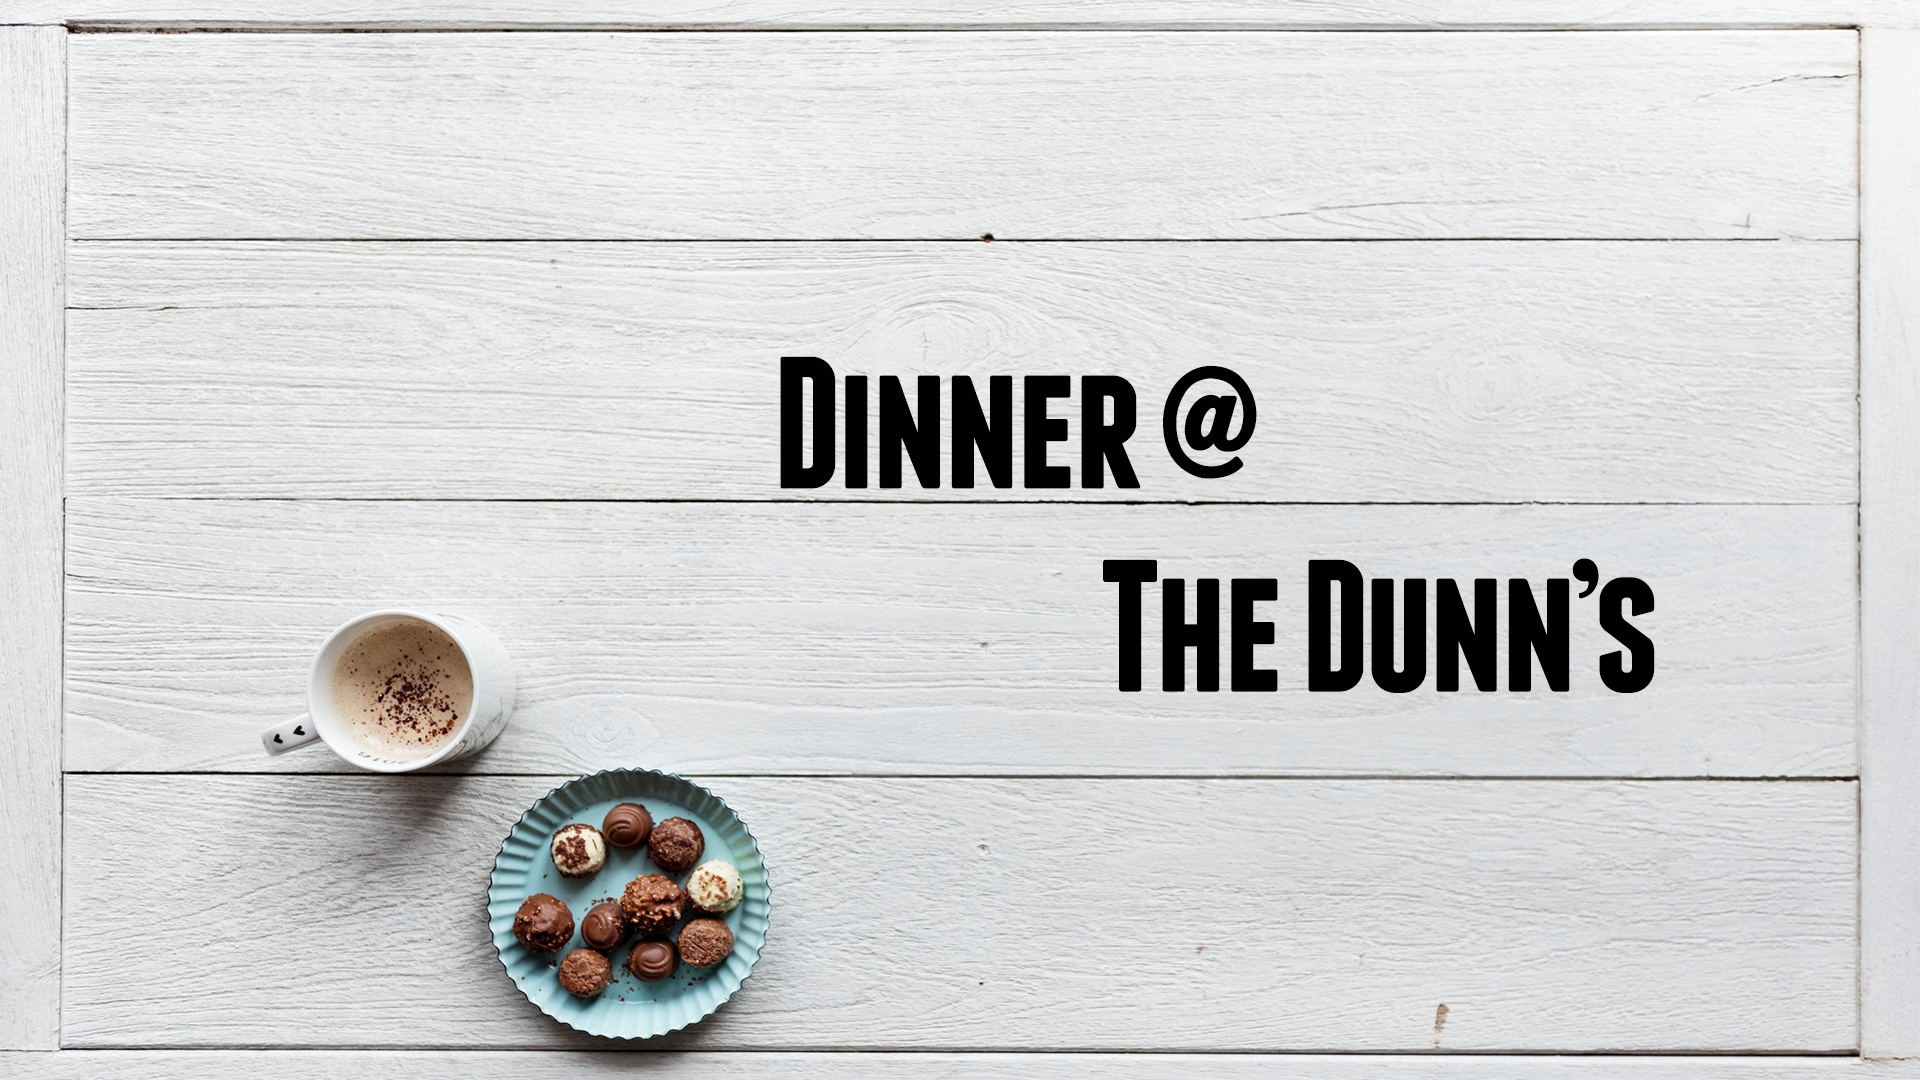 Dinner at the dunns image